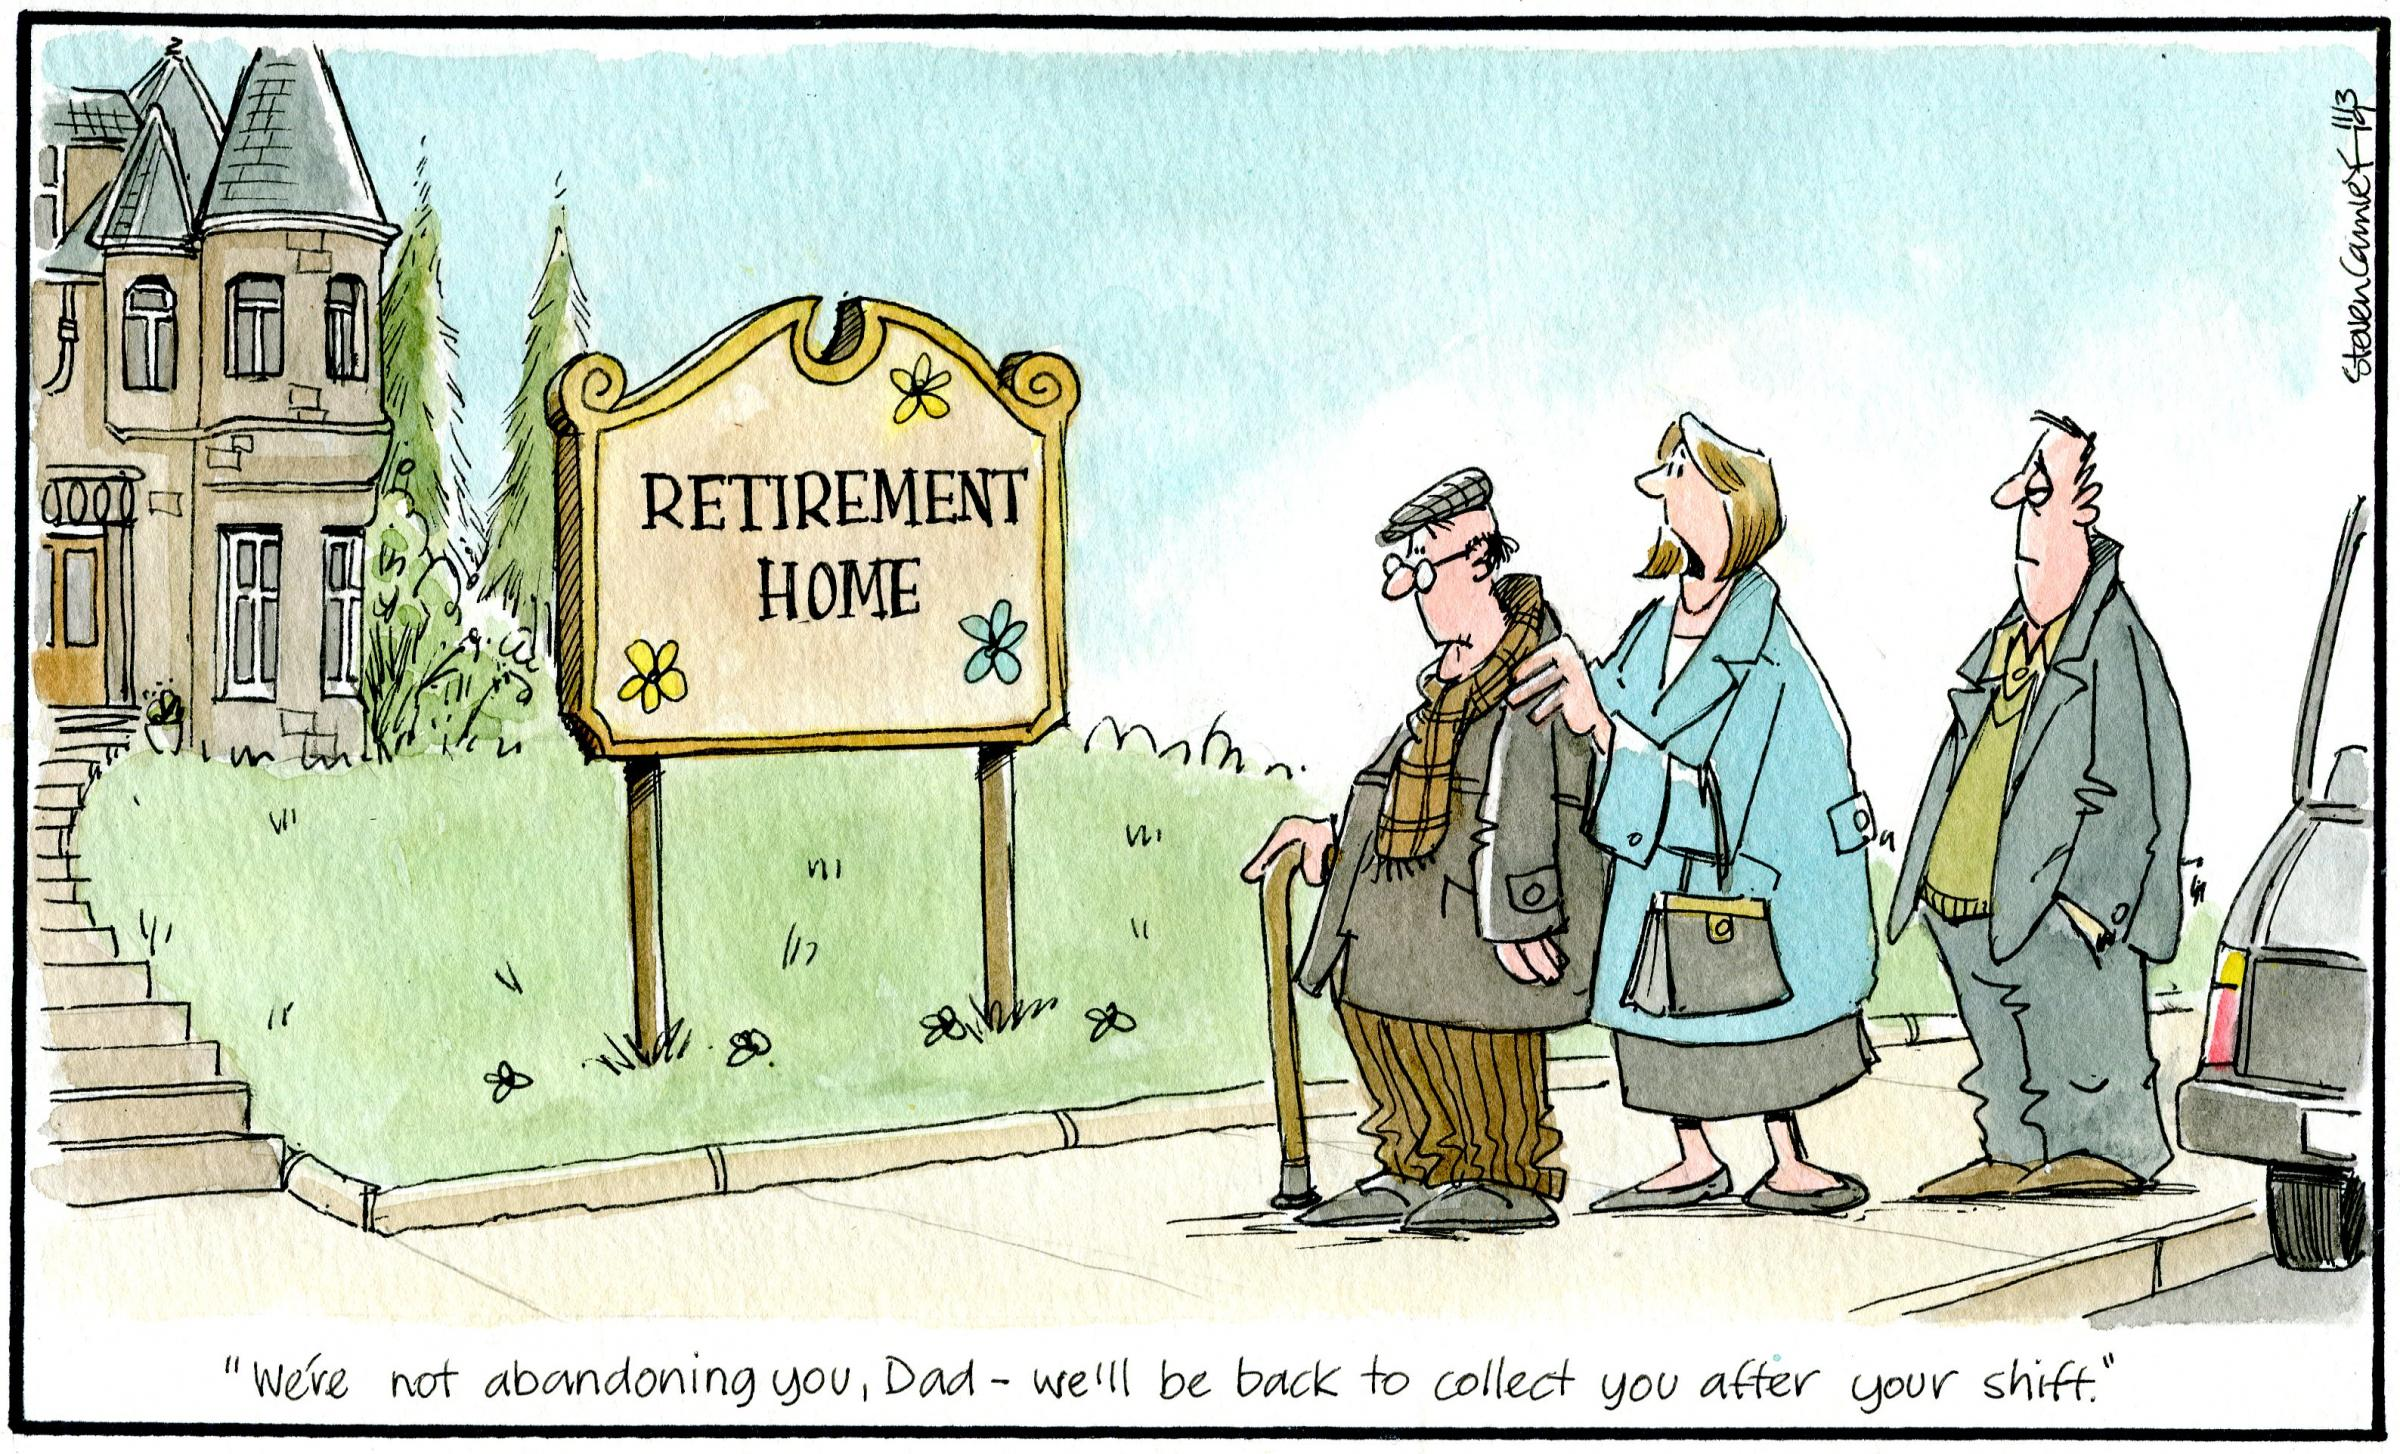 Camley's Cartoon on Monday, March 11: Retirement crisis of confidence